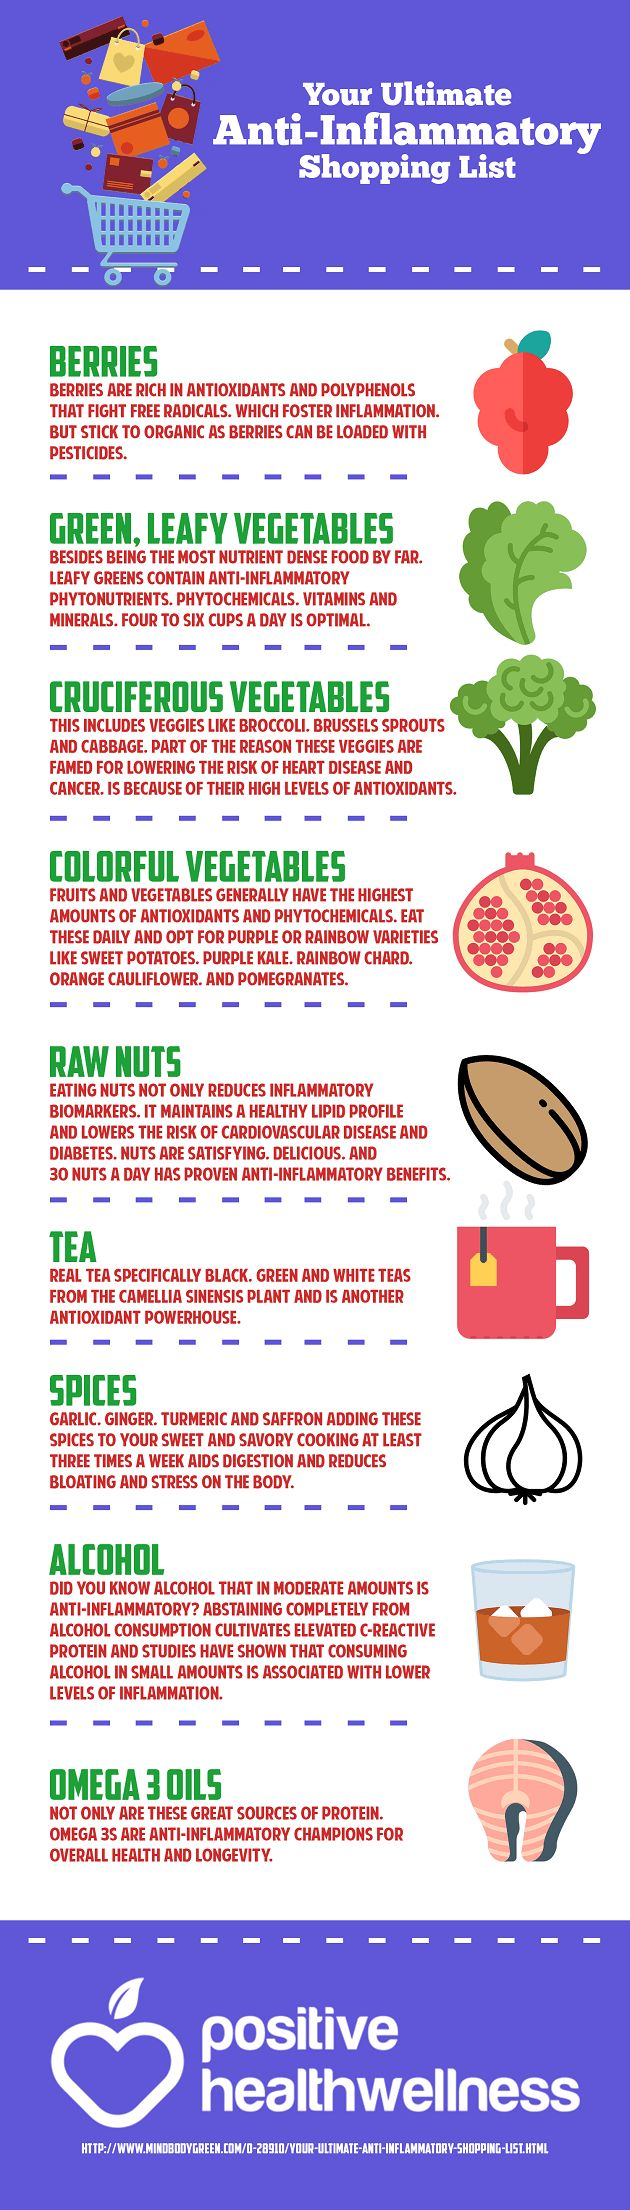 Your Ultimate Anti-Inflammatory Shopping List – Positive Health Wellness Infographic